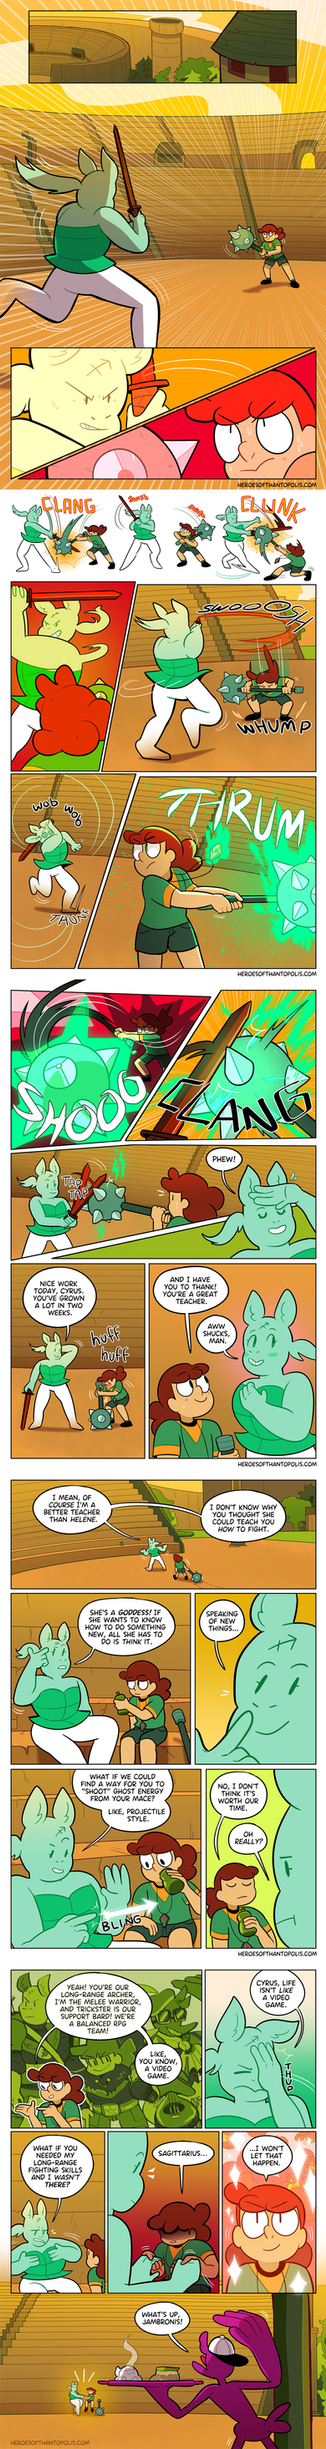 Heroes of Thantopolis Ch5 1-5 by Strontium-Chloride